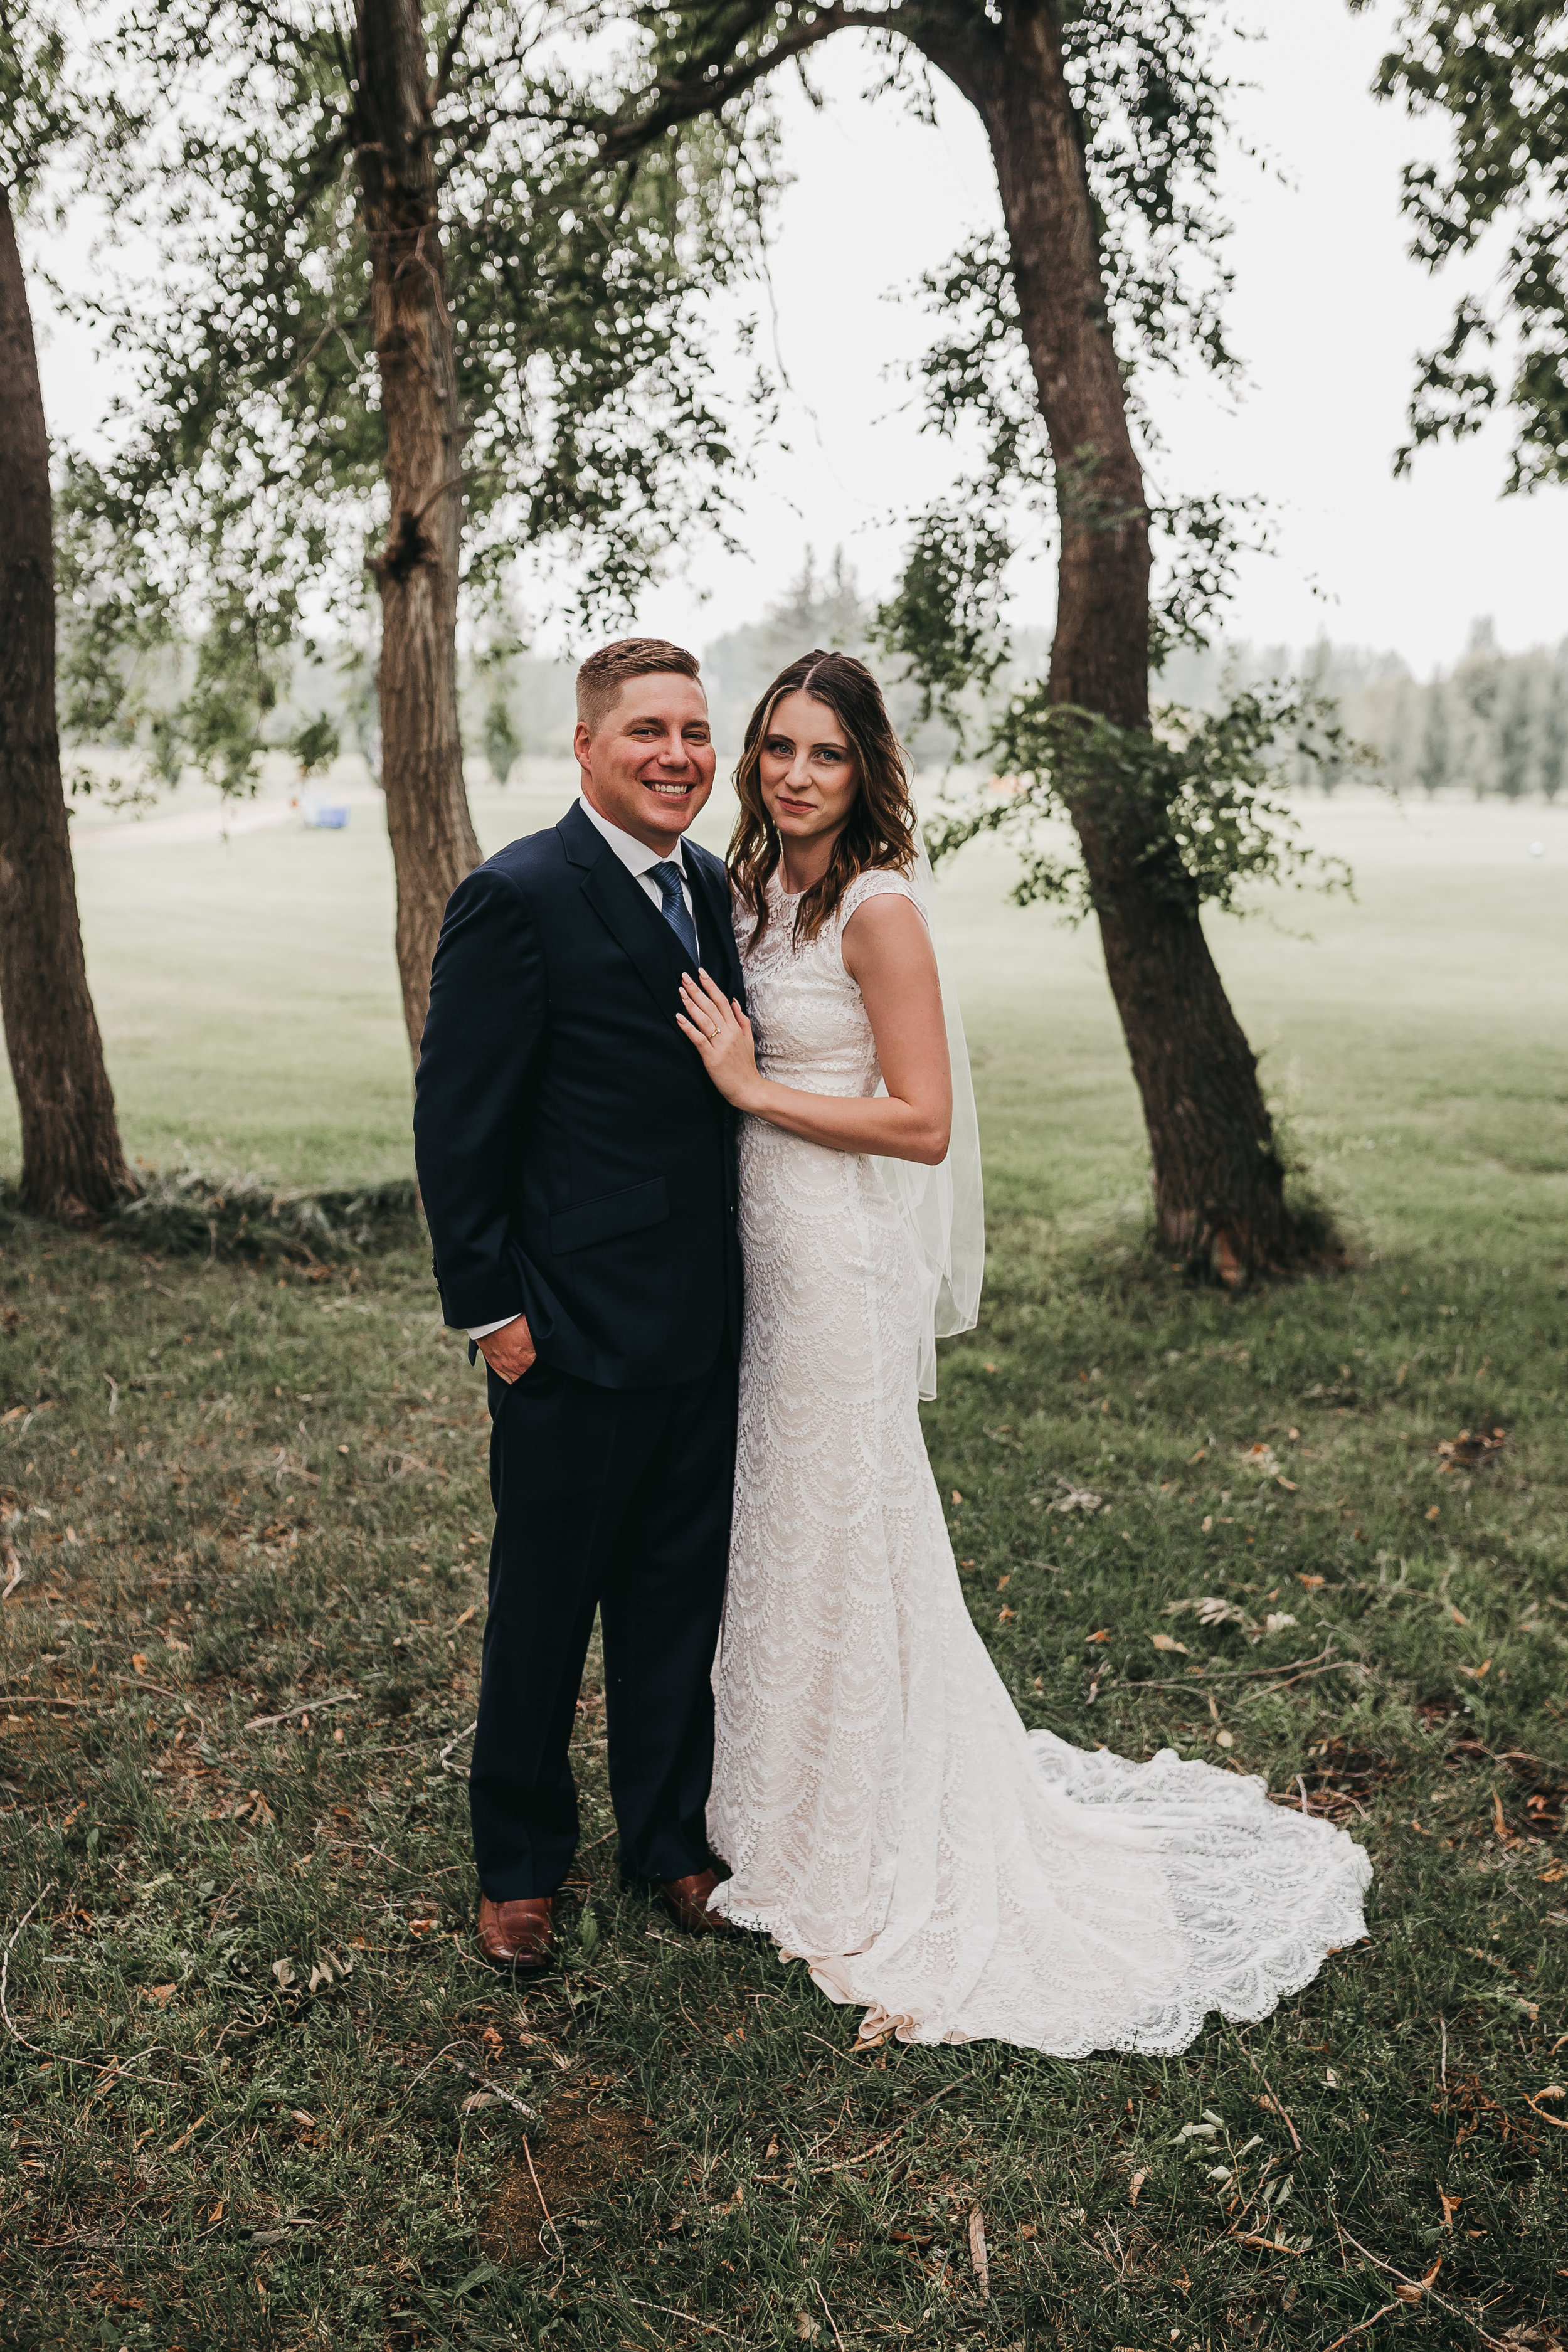 SimplePerfectionsPhotography.Mike+Courtney-105.jpg